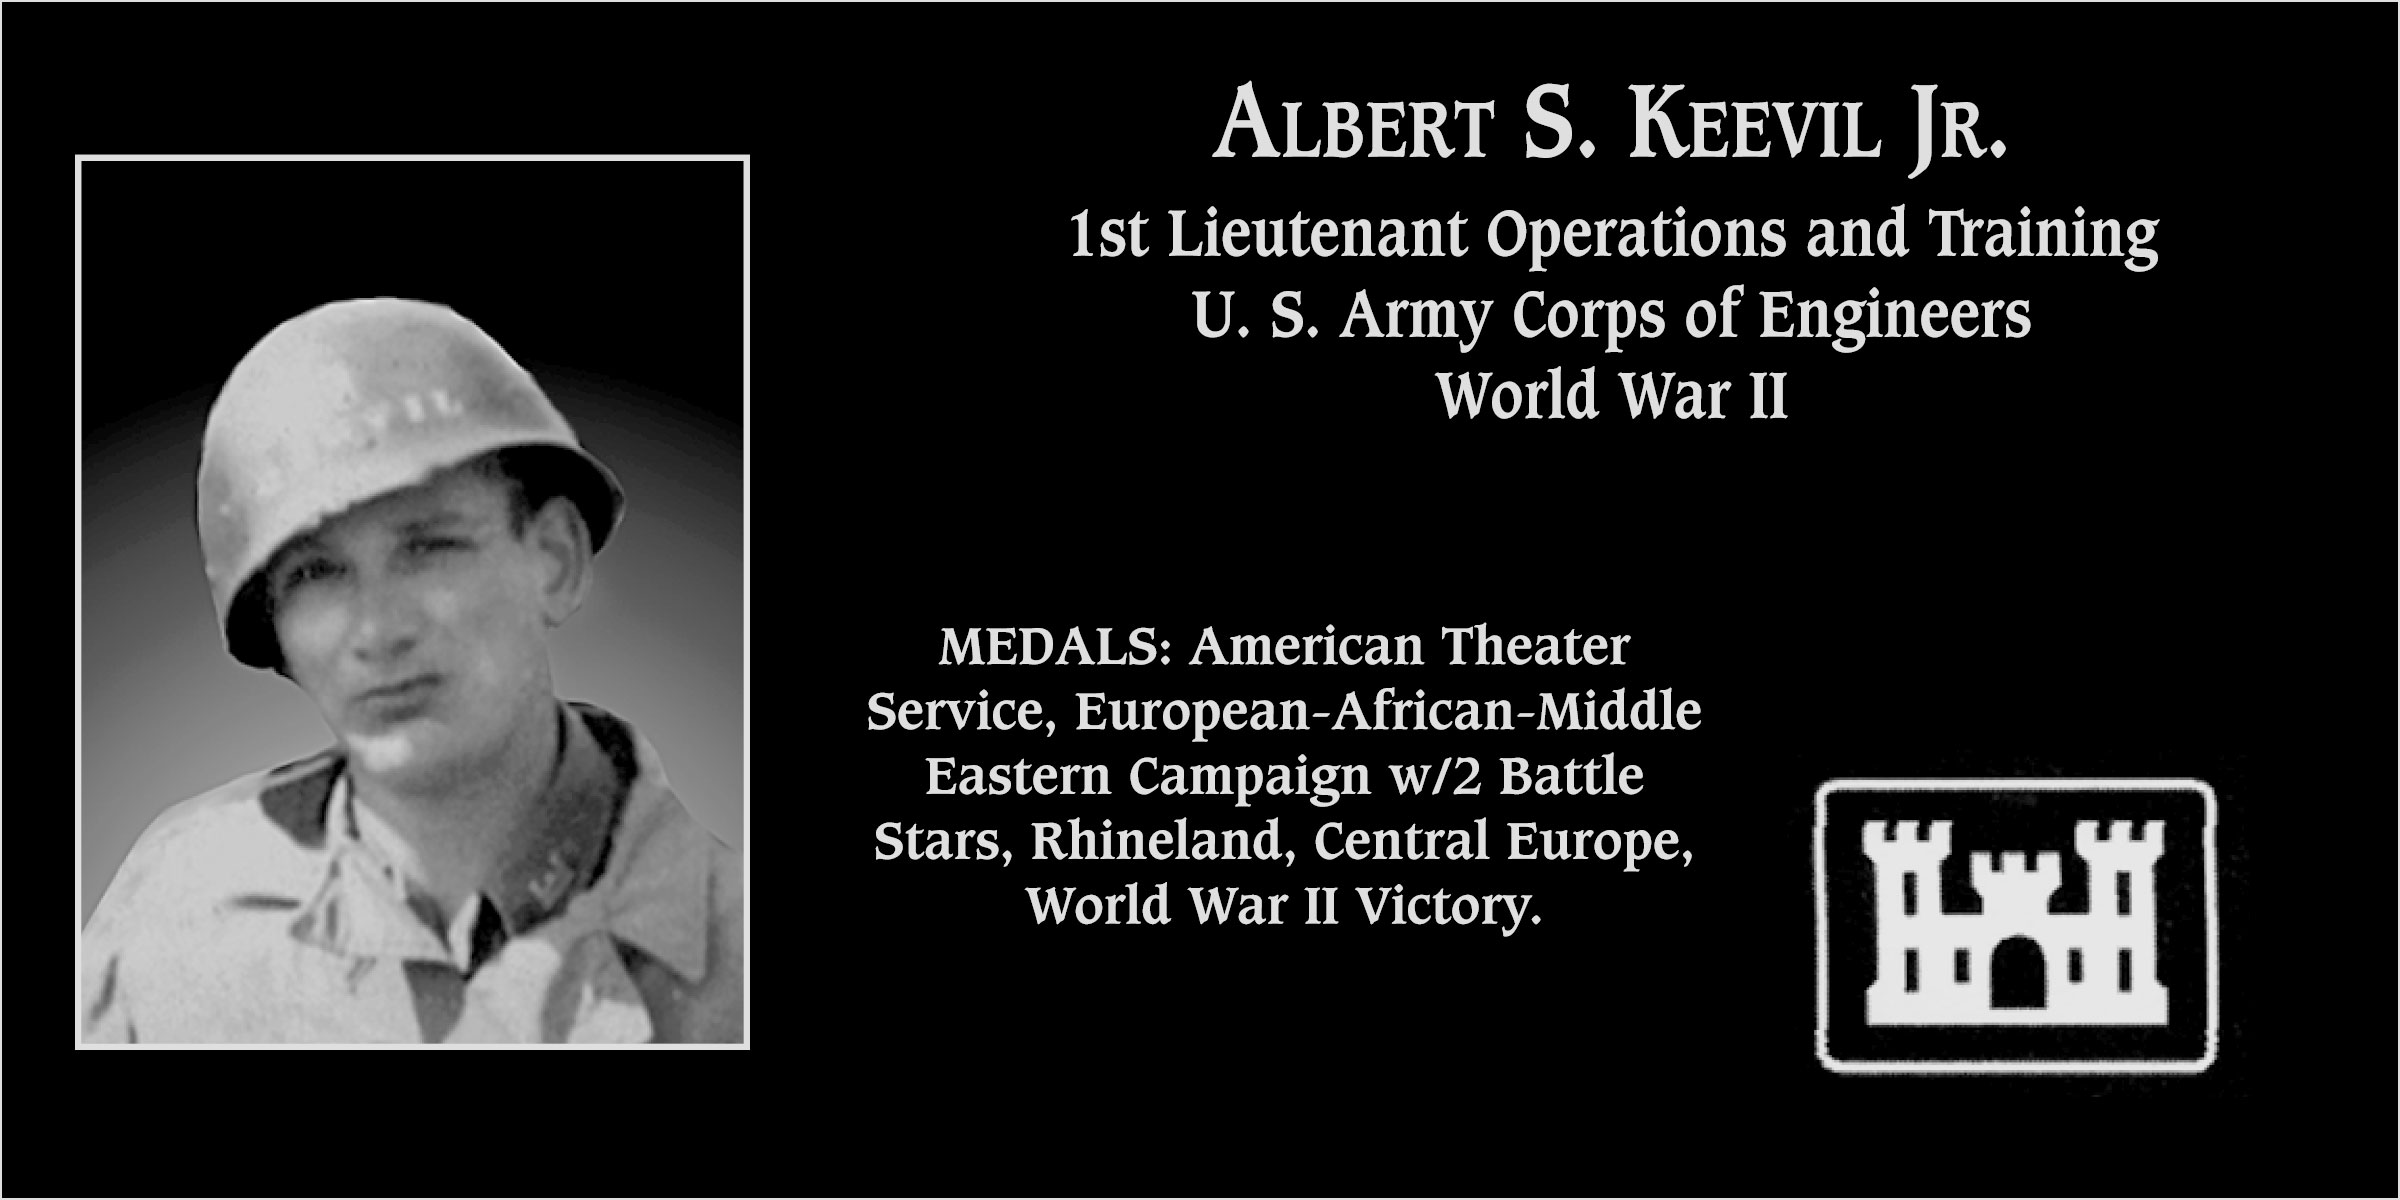 Albert S. Keevil, Jr.